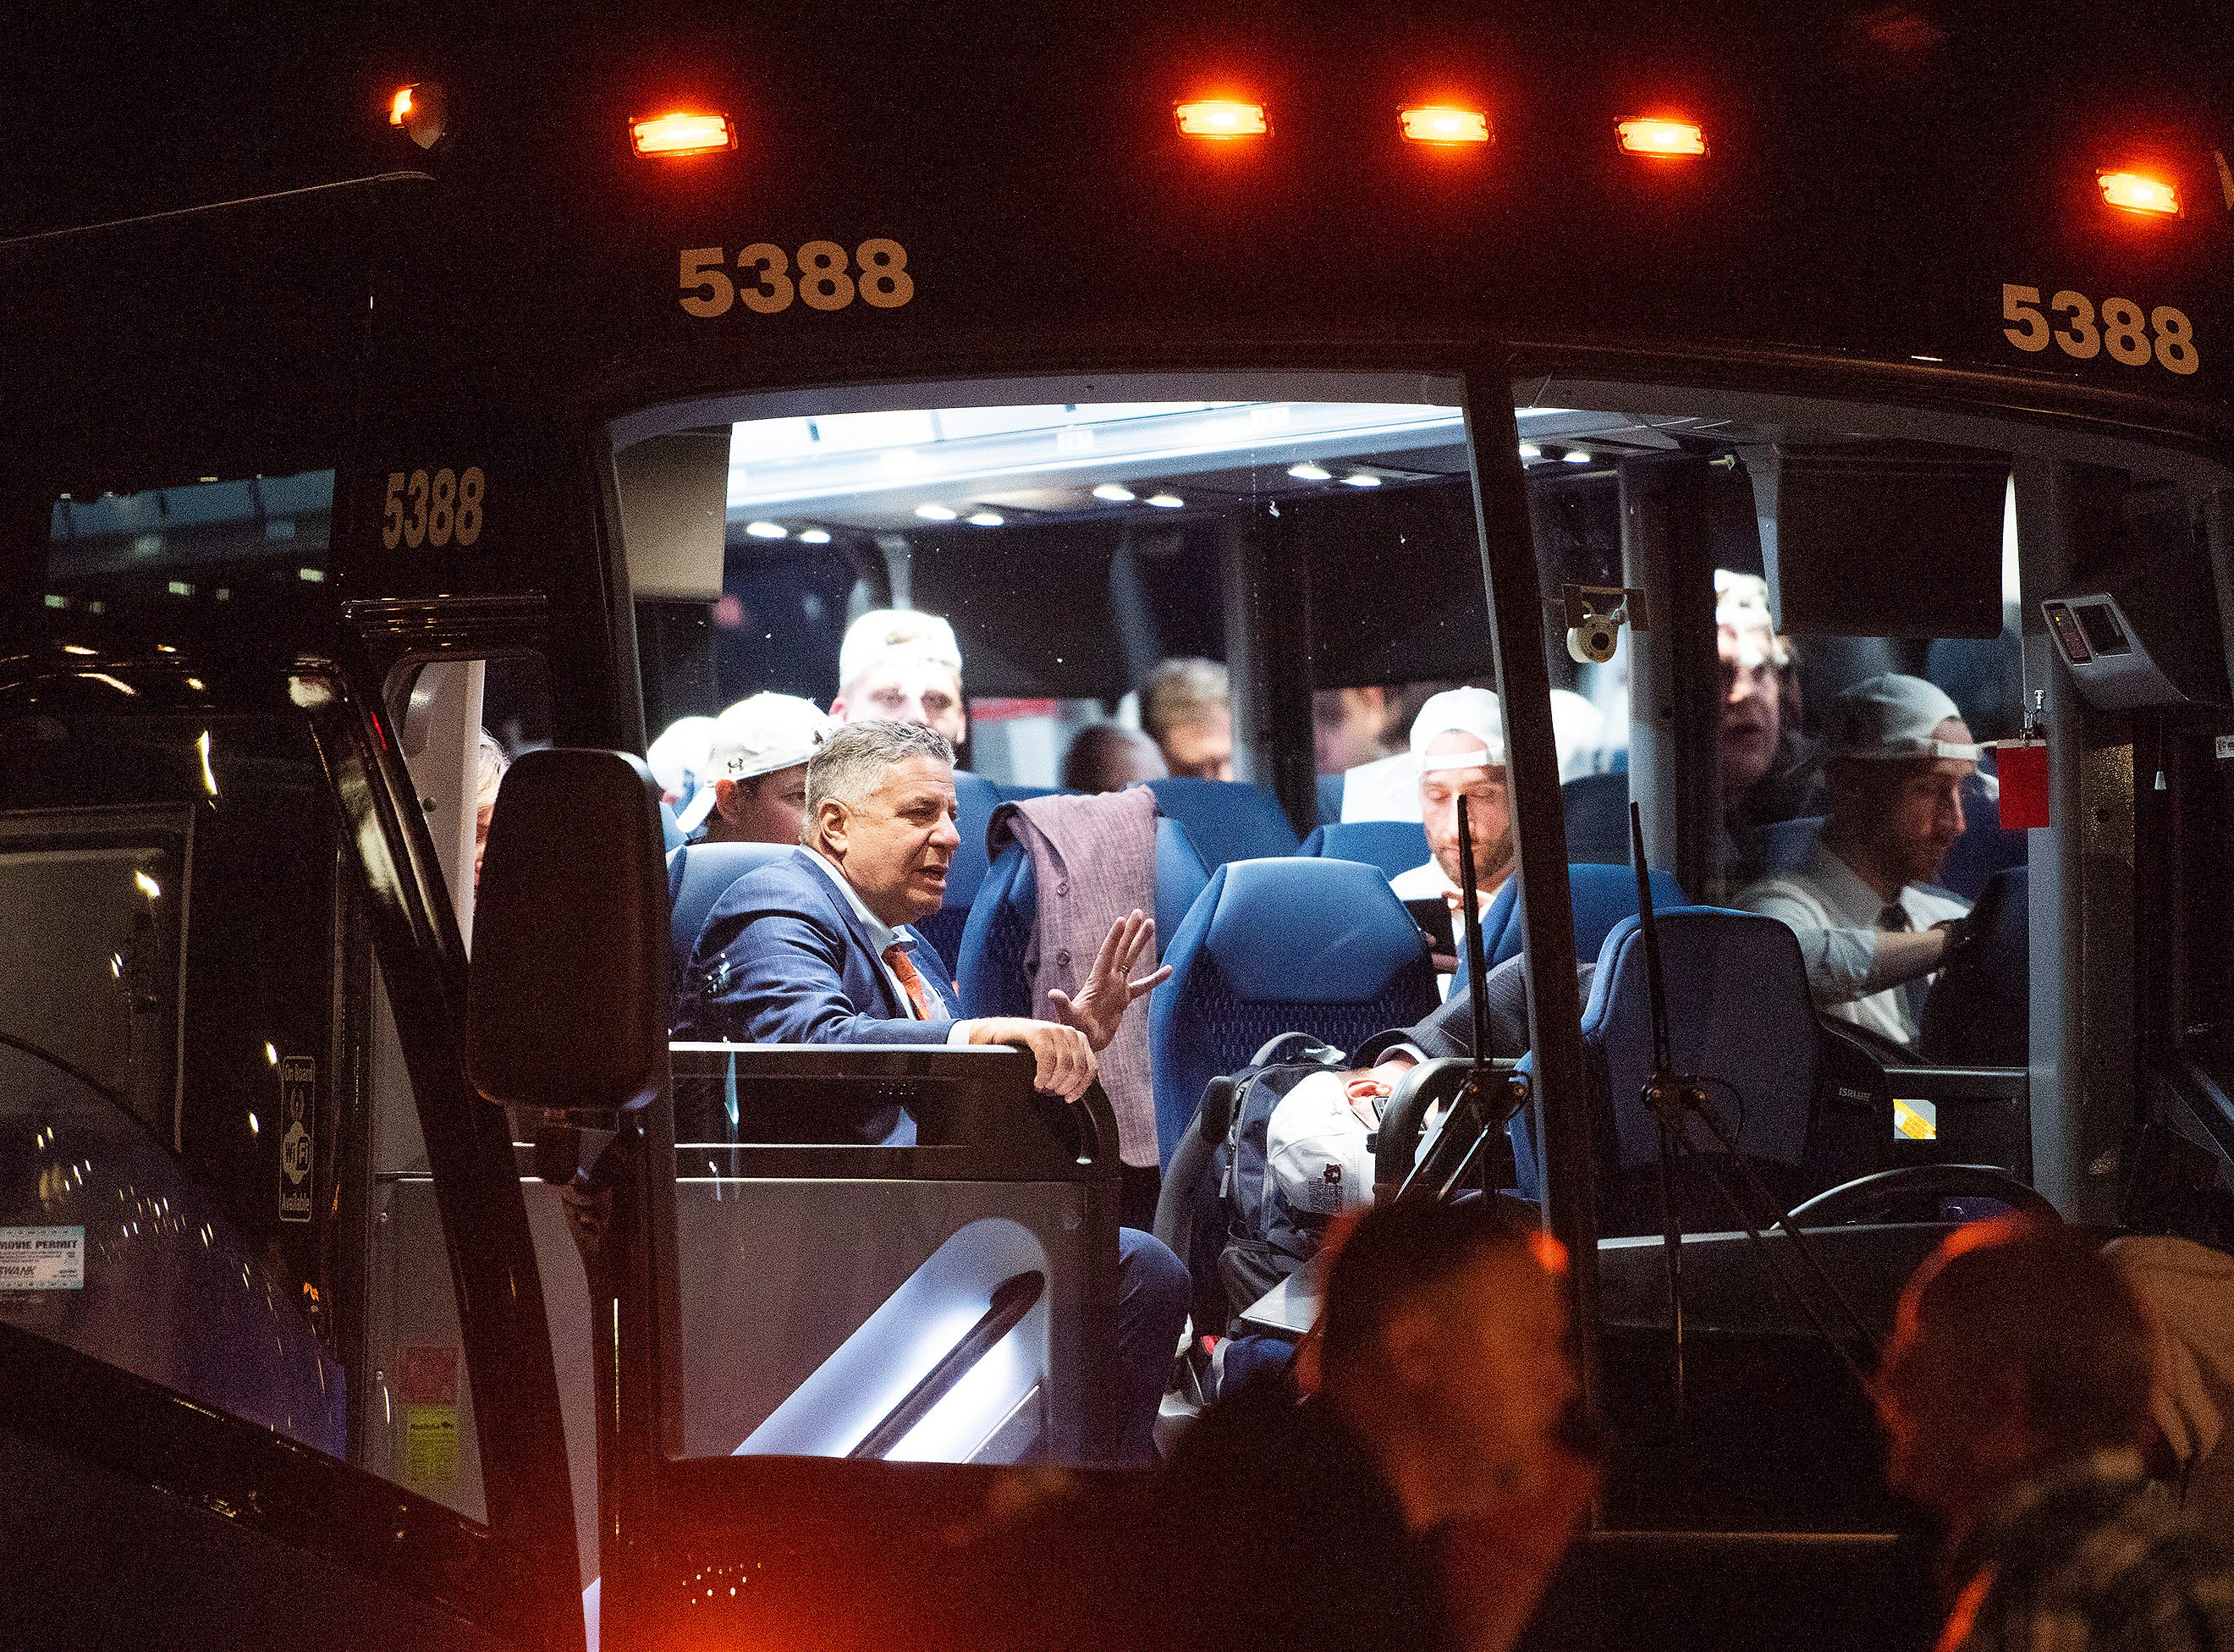 Head coach Bruce Pearl and the Auburn men's basketball team load on buses after they arrive at the Montgomery, Ala., airport on Sunday evening March 31, 2019 after defeating Kentucky in Kansas City to advance to the NCAA Basketball Final Four next weekend.